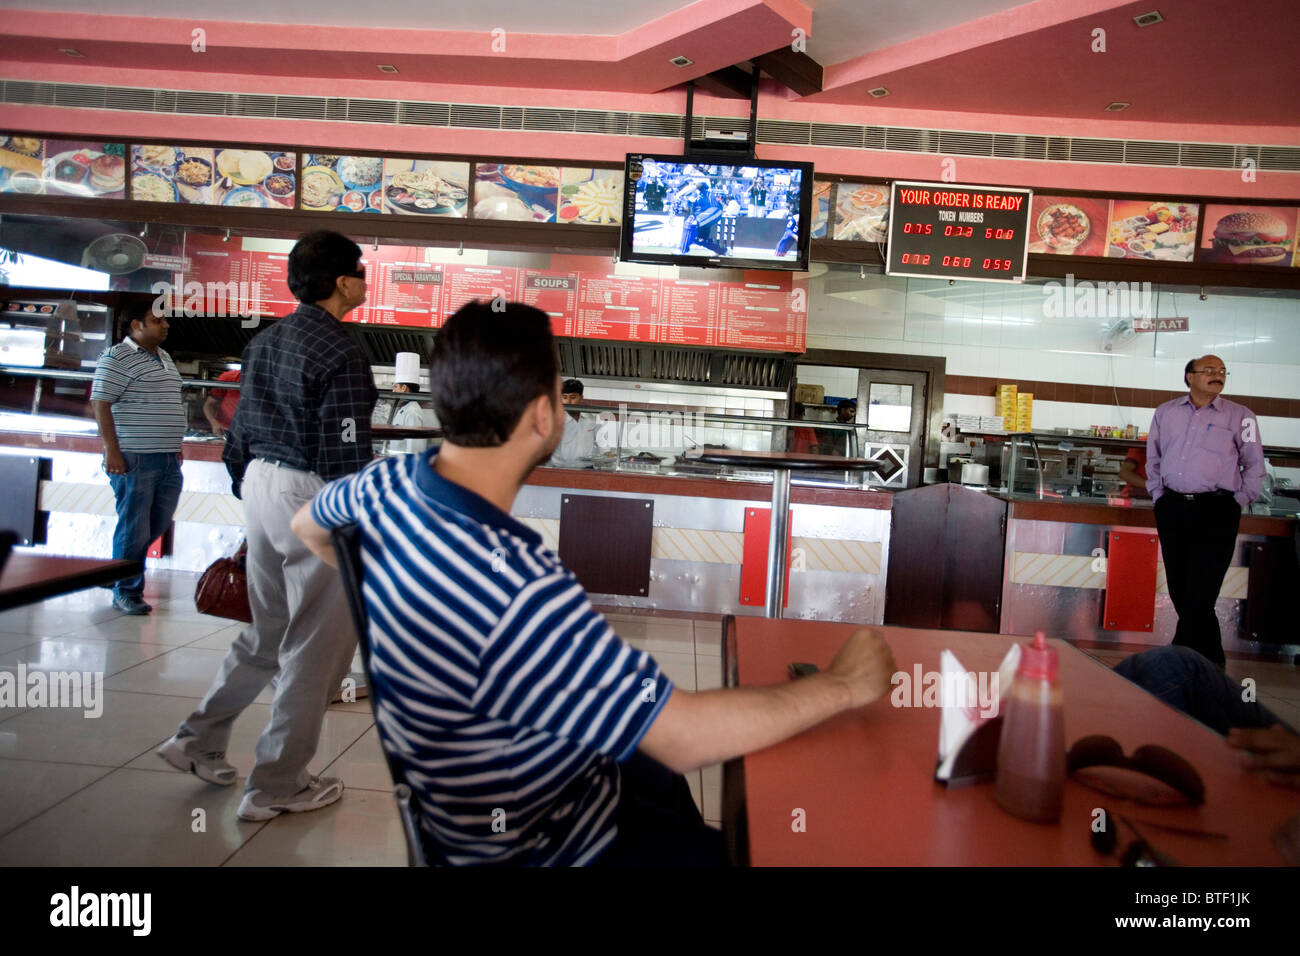 Fast-food shop in India showing cricket game on tv screen. - Stock Image